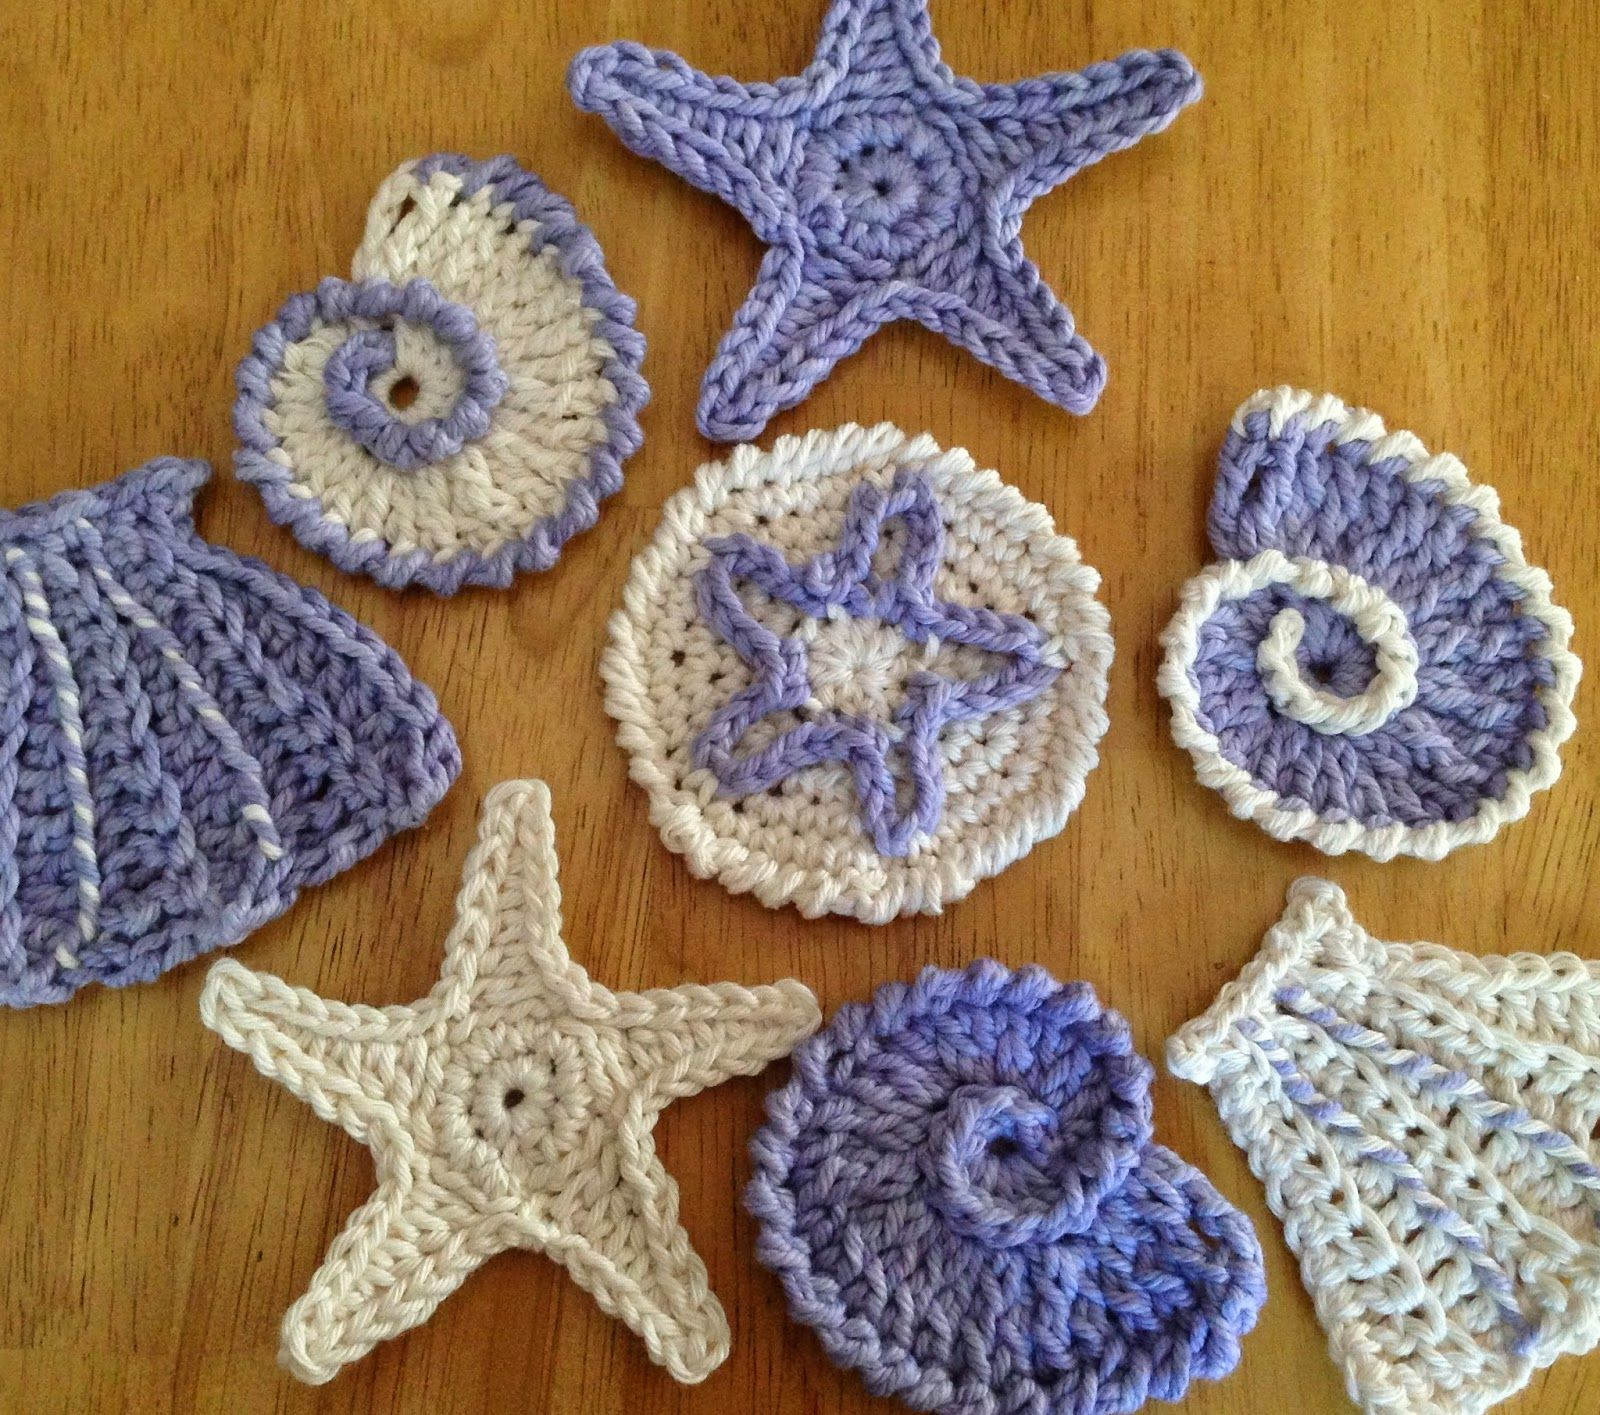 Pin By Cindy Waleri On Crochet Bows And Shapes Crochet